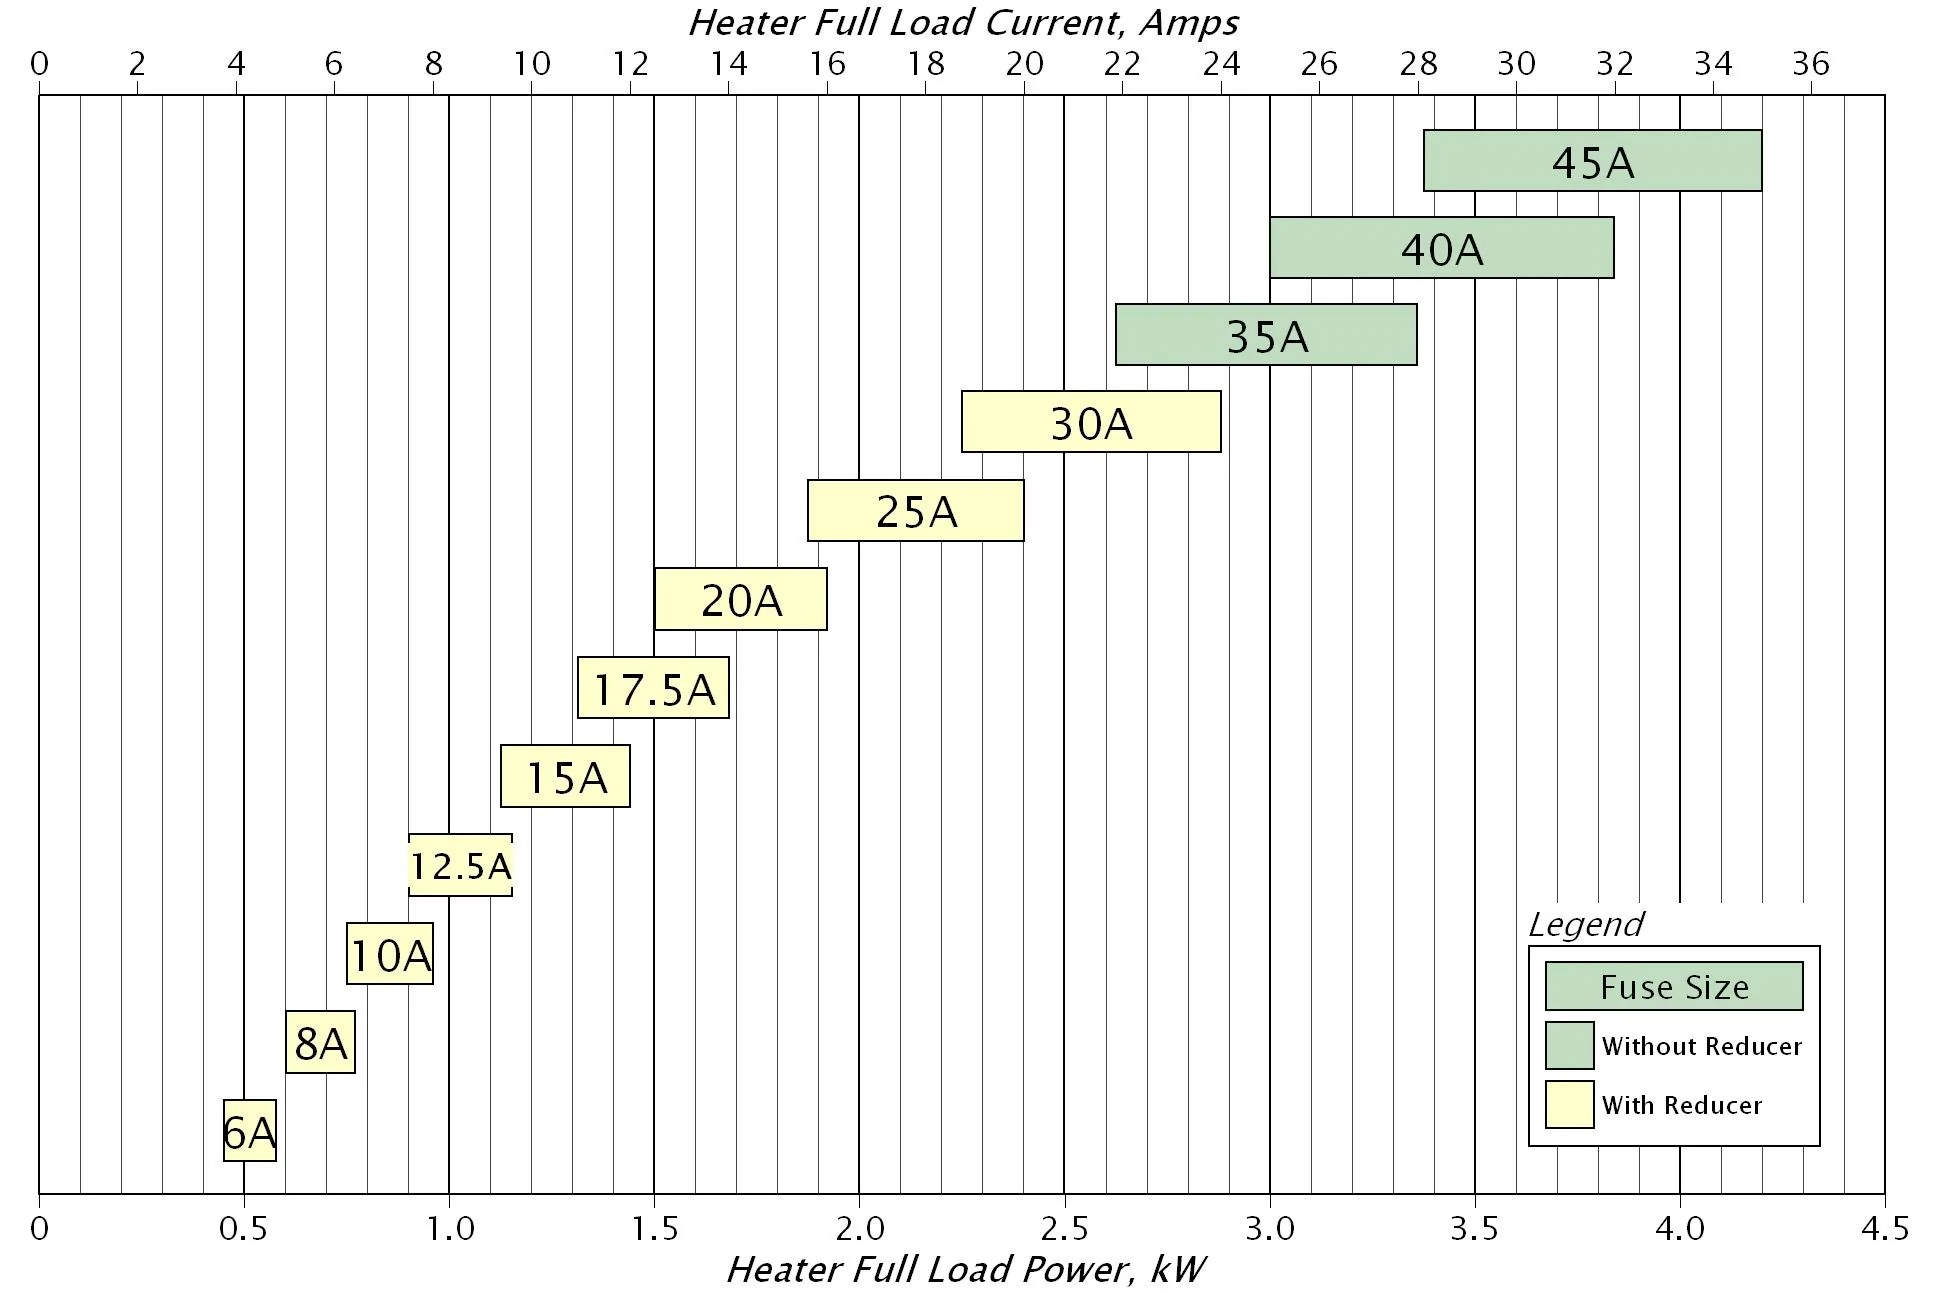 small resolution of fuse sizing diagram ifpa 120 1p 35a